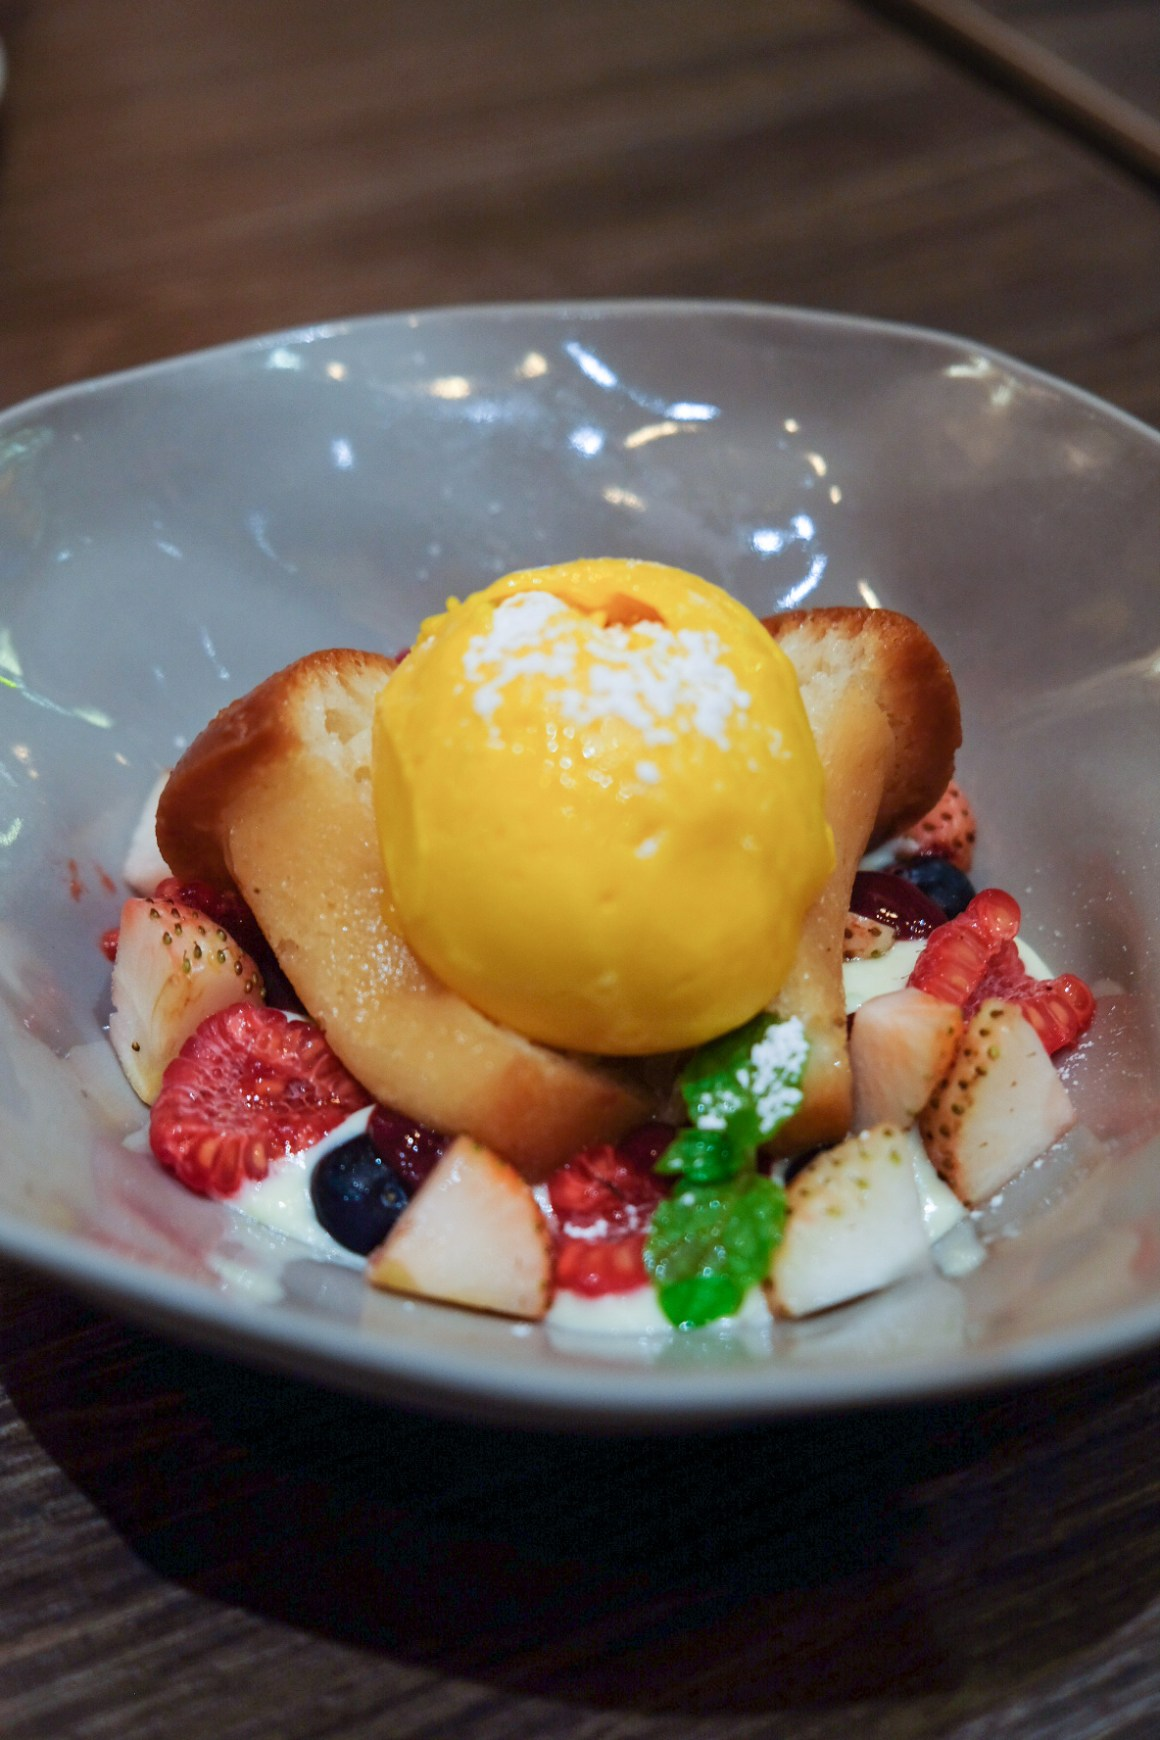 Delicious Italian Food At Amo Restaurant - Lemon Baba with Custard, Mango Sorbet and Mixed Berries ($15)